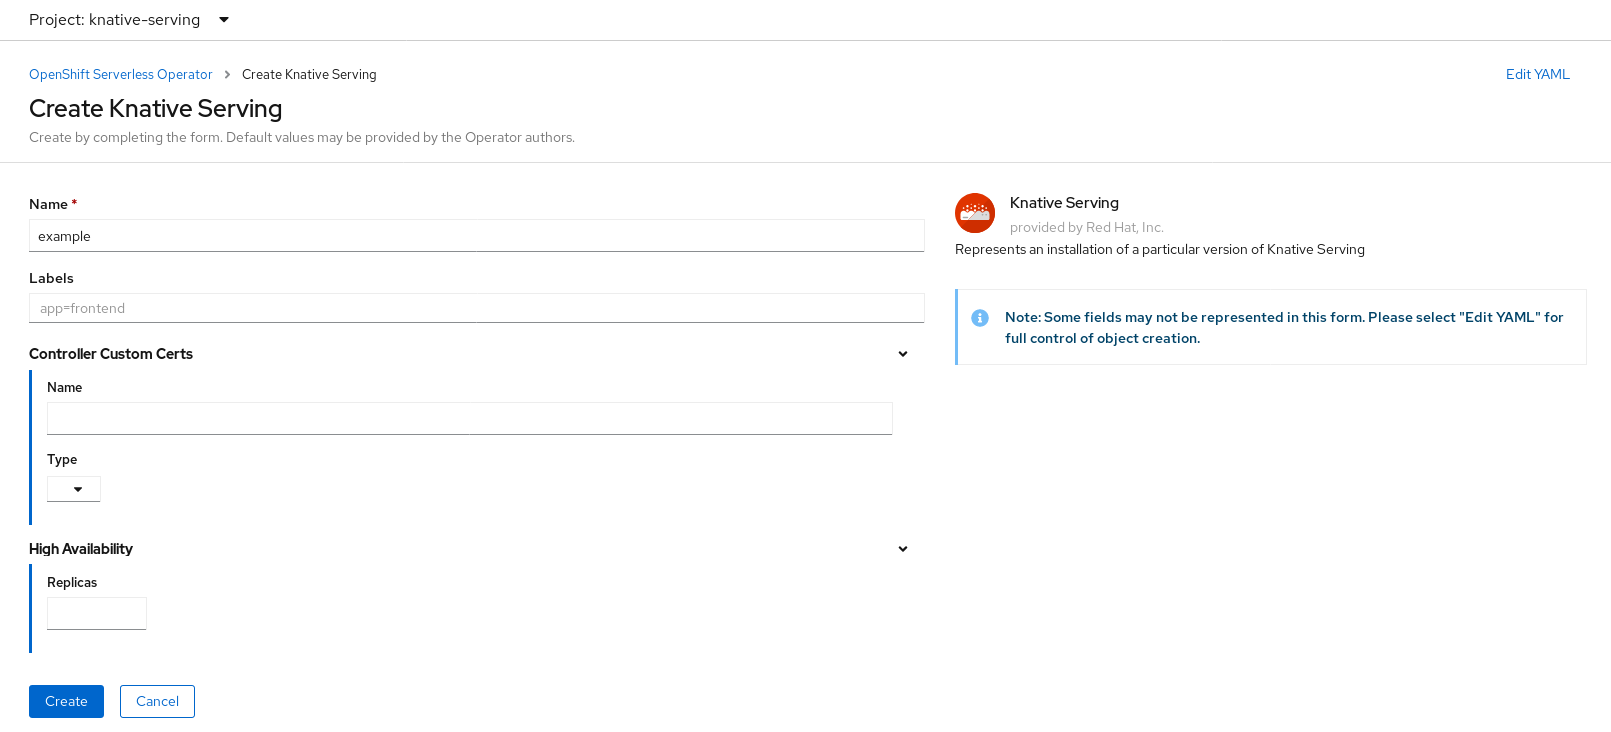 Create Knative Serving in Form View